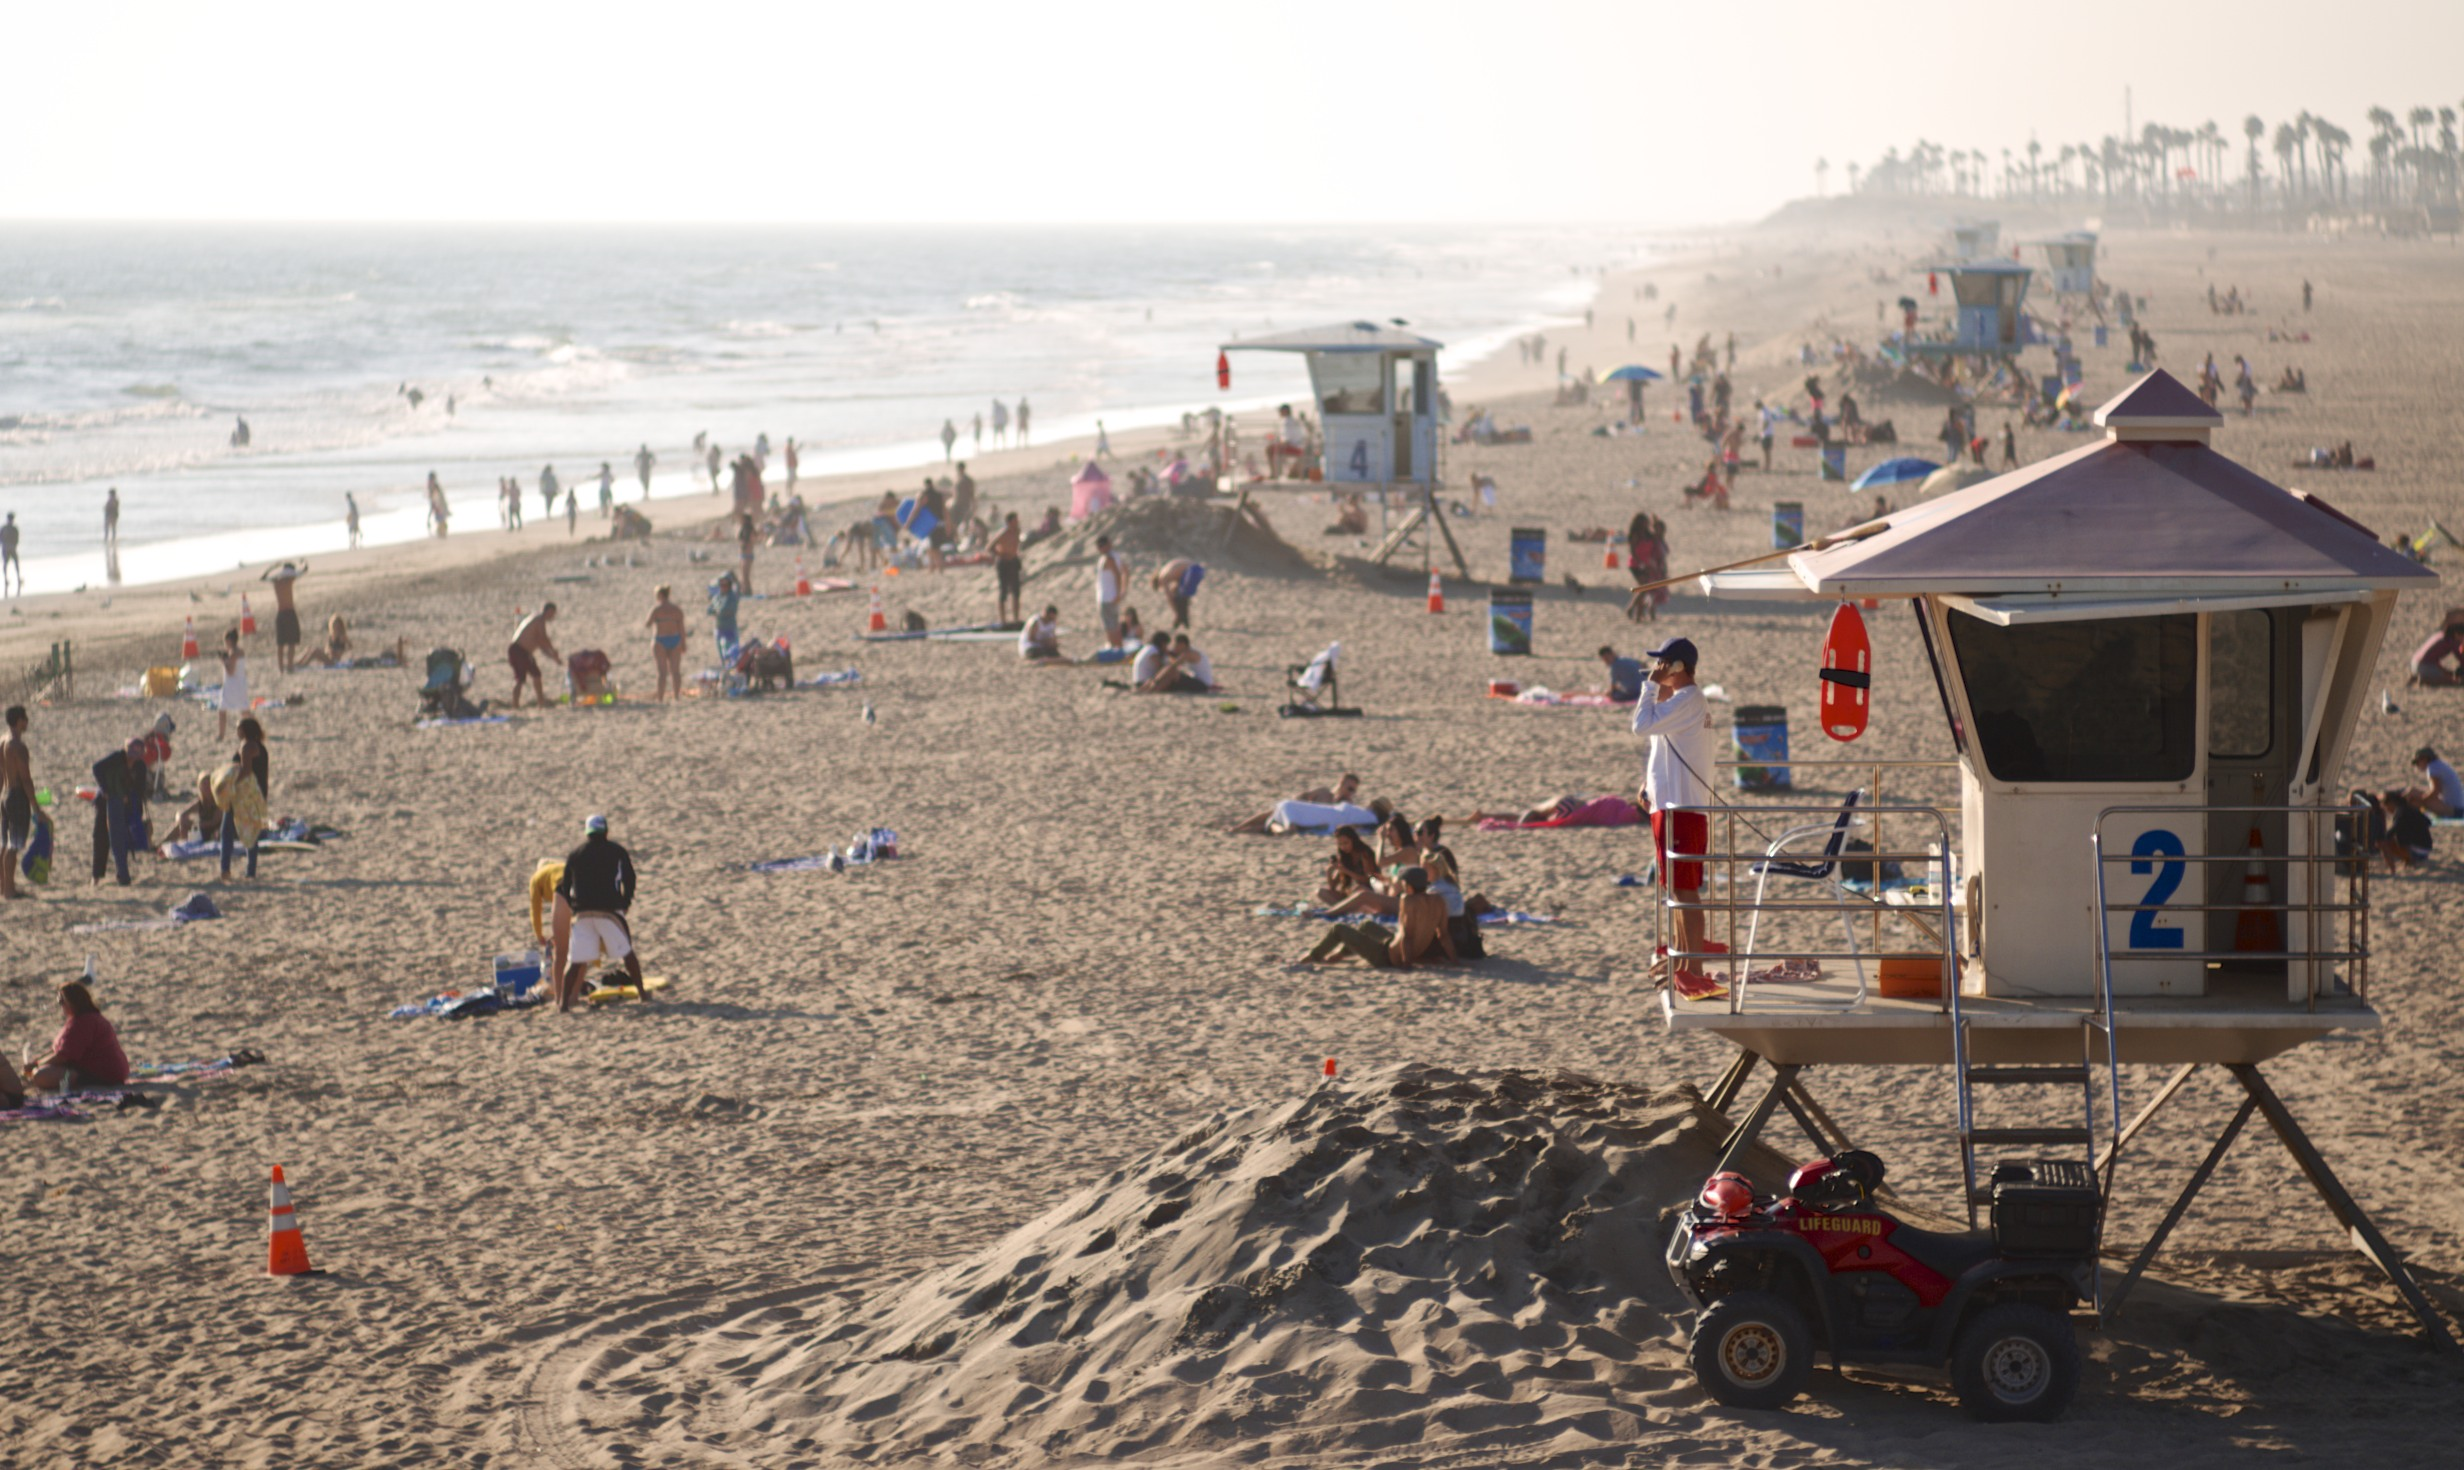 Huntington Beach, California - etats-unis, californie, amerique-du-nord, a-faire